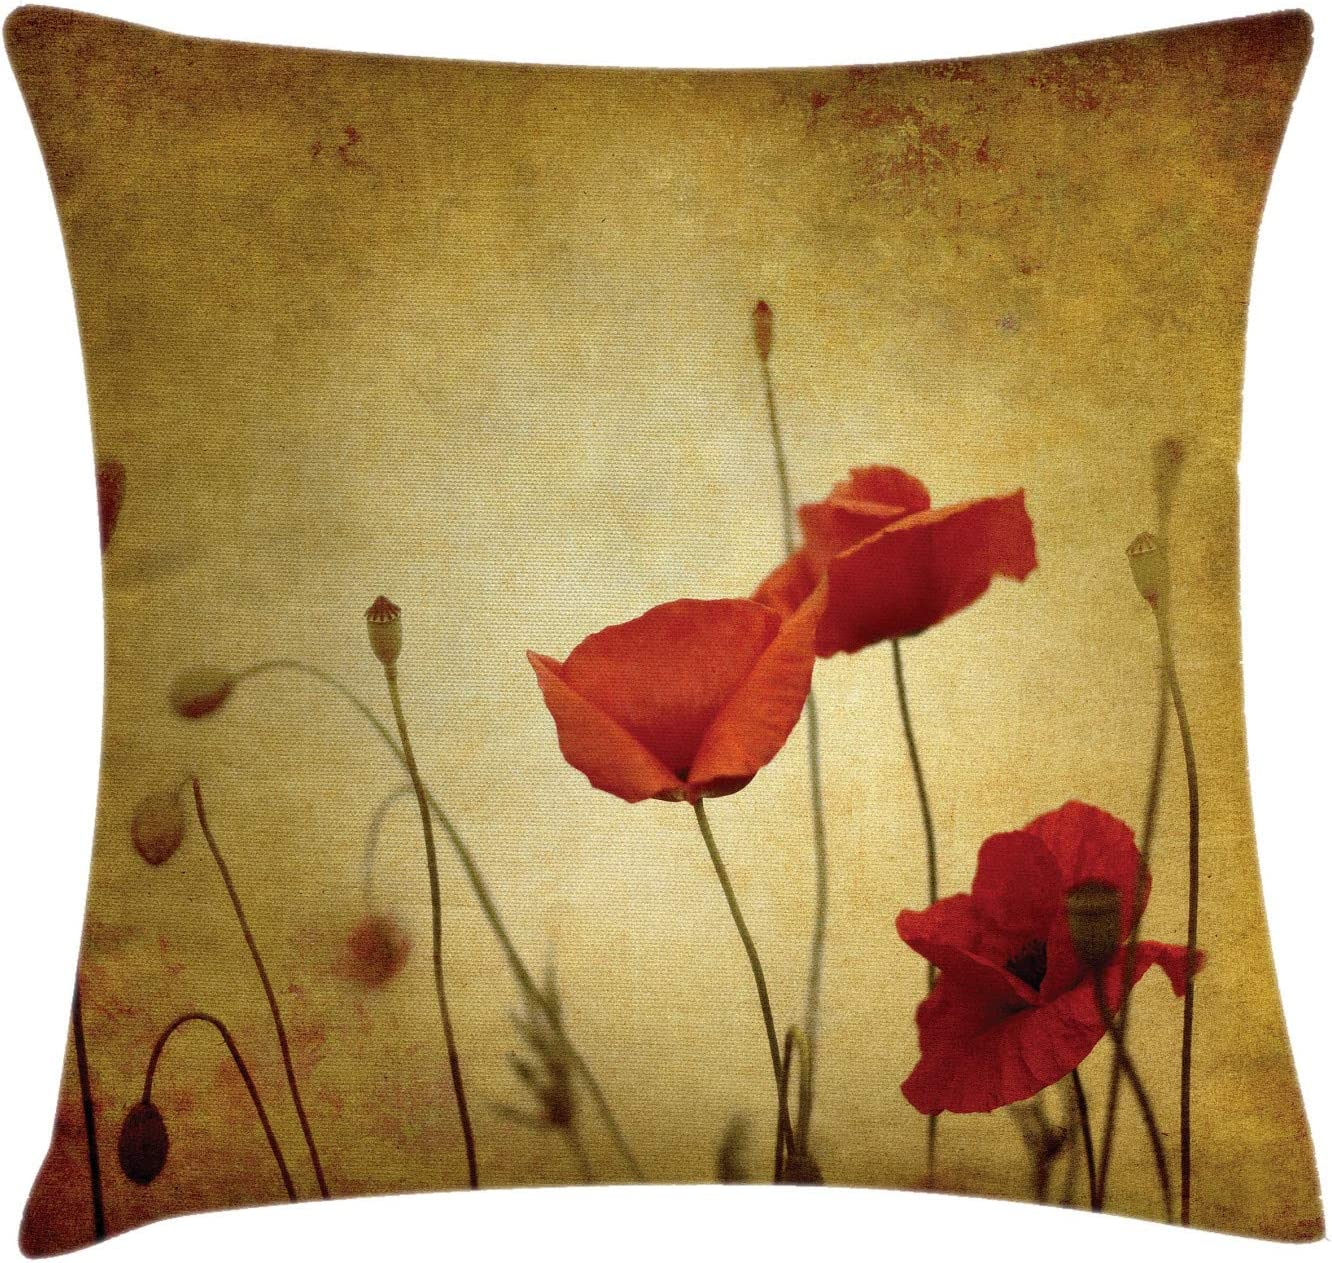 Amazon Com Ambesonne Poppy Flower Throw Pillow Cushion Cover Poppies And Buds On Ambient Dark Grunge Background Retro Effects Bohemian Decorative Square Accent Pillow Case 40 X 40 Cream Red Home Kitchen